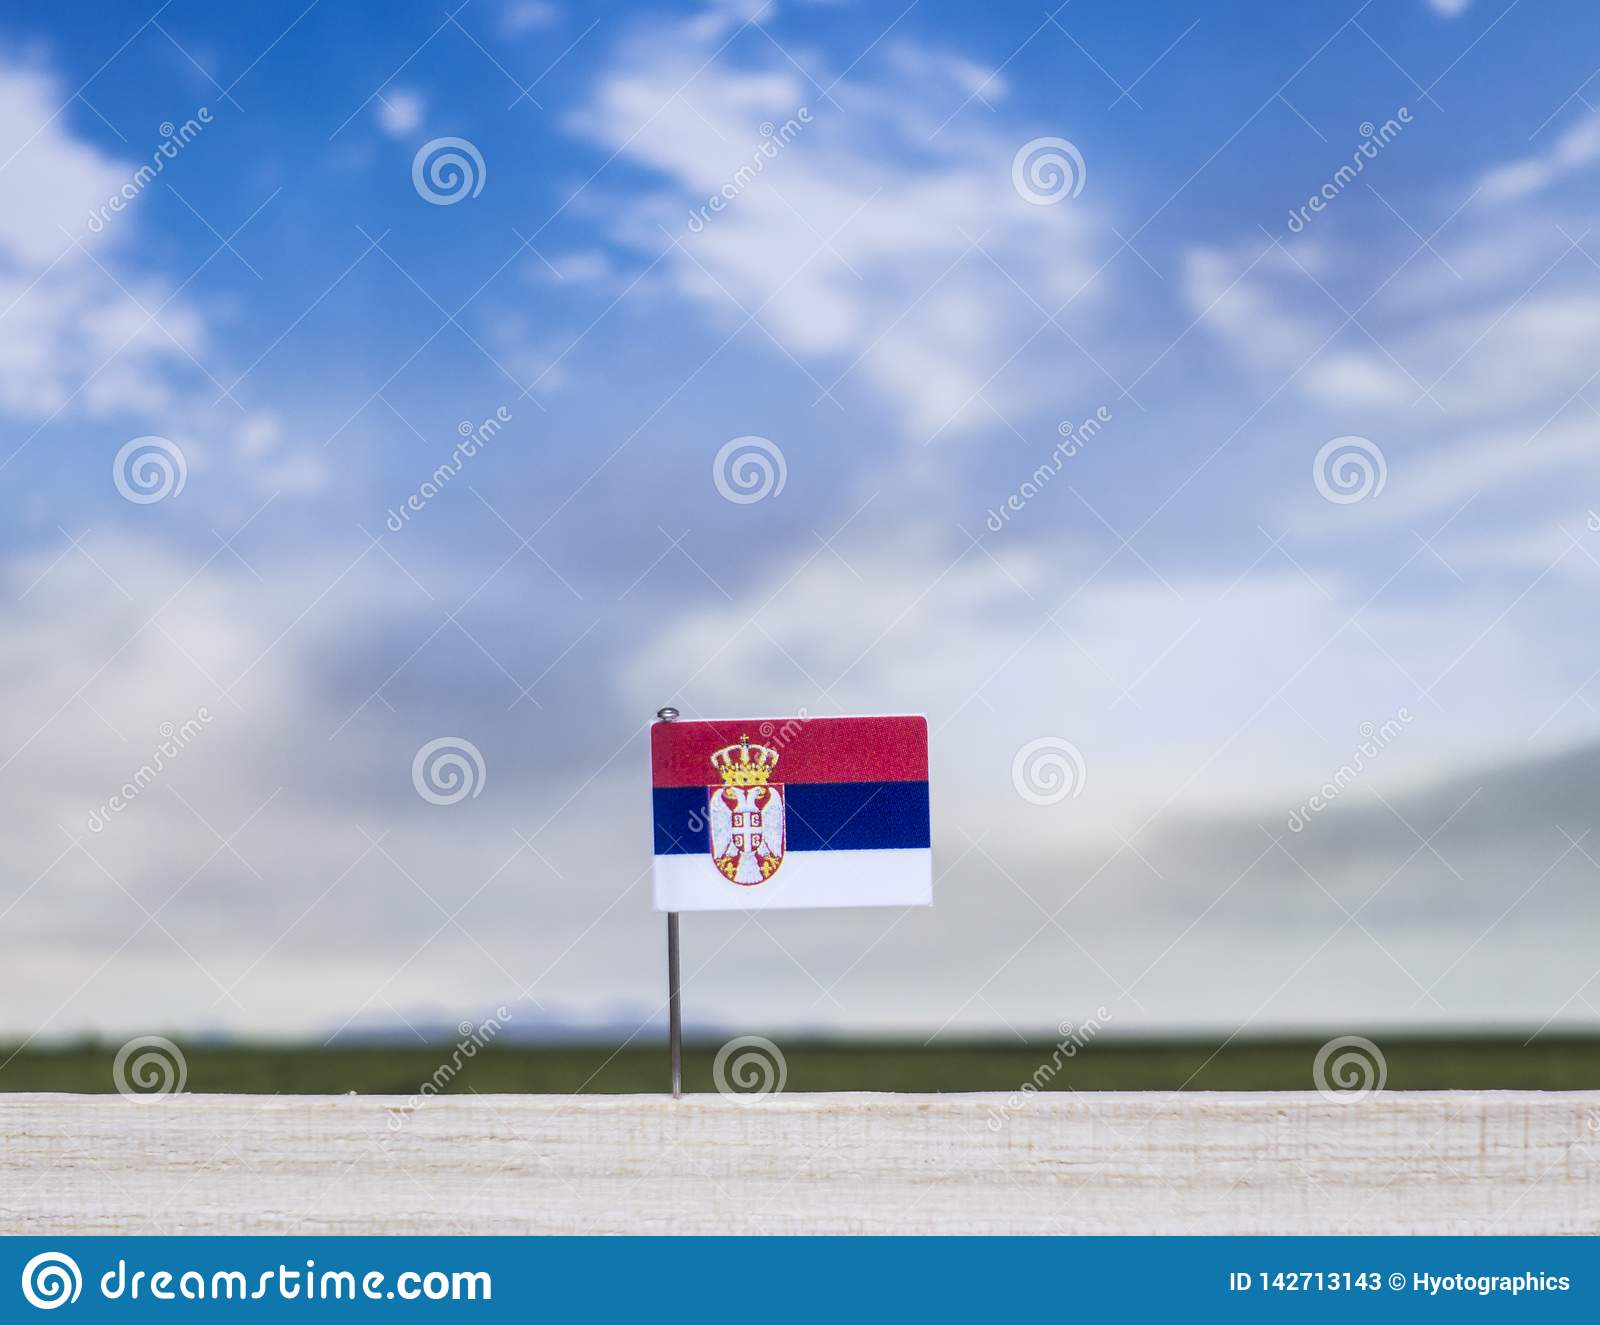 Flag of Serbia with vast meadow and blue sky behind it.